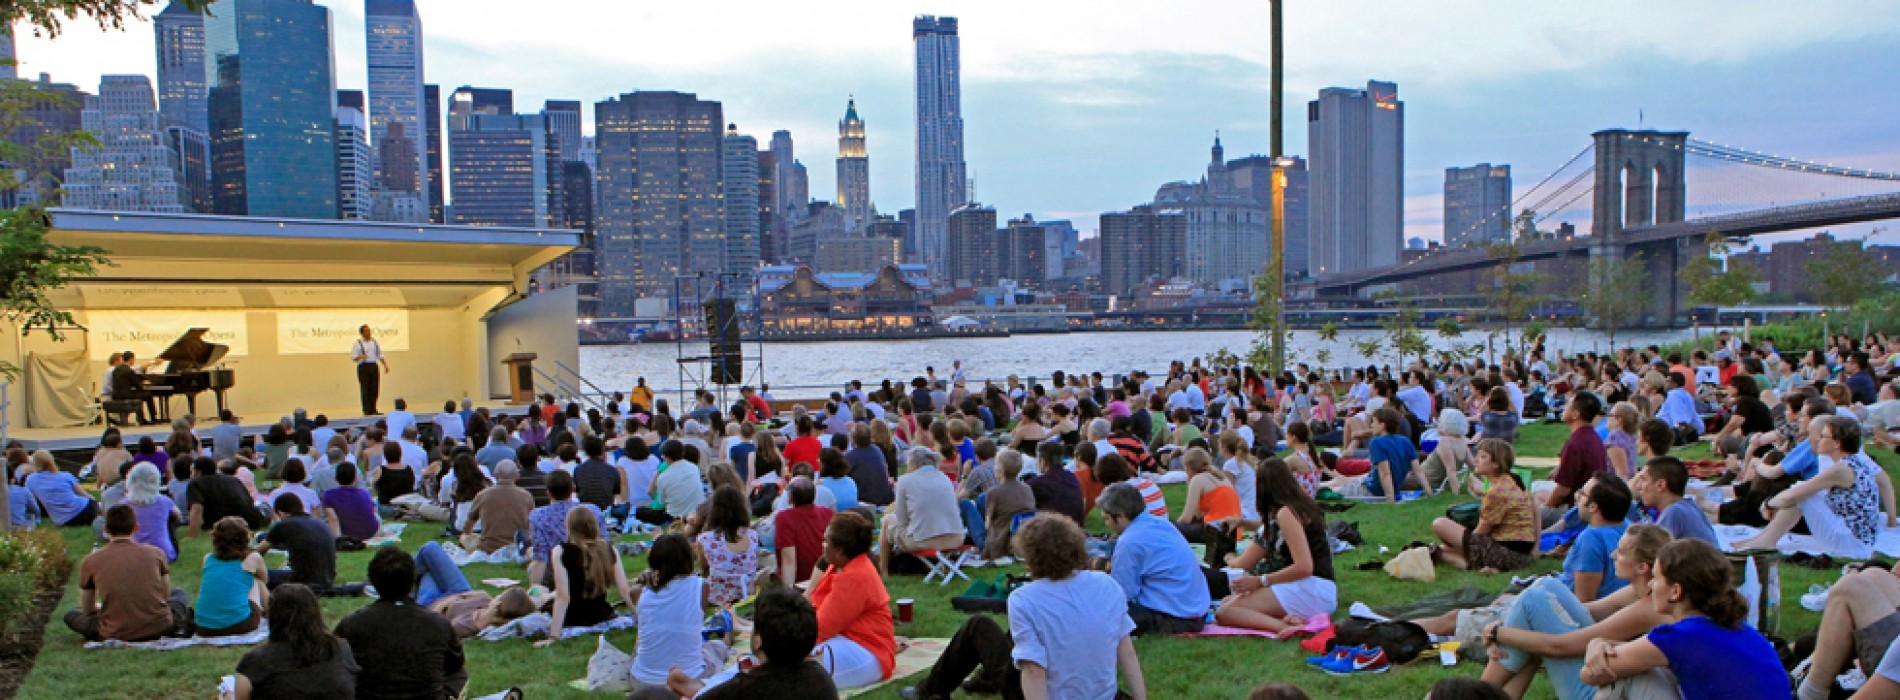 August in New York, Free and Affordable Summer Outdoor Concert Series and Events